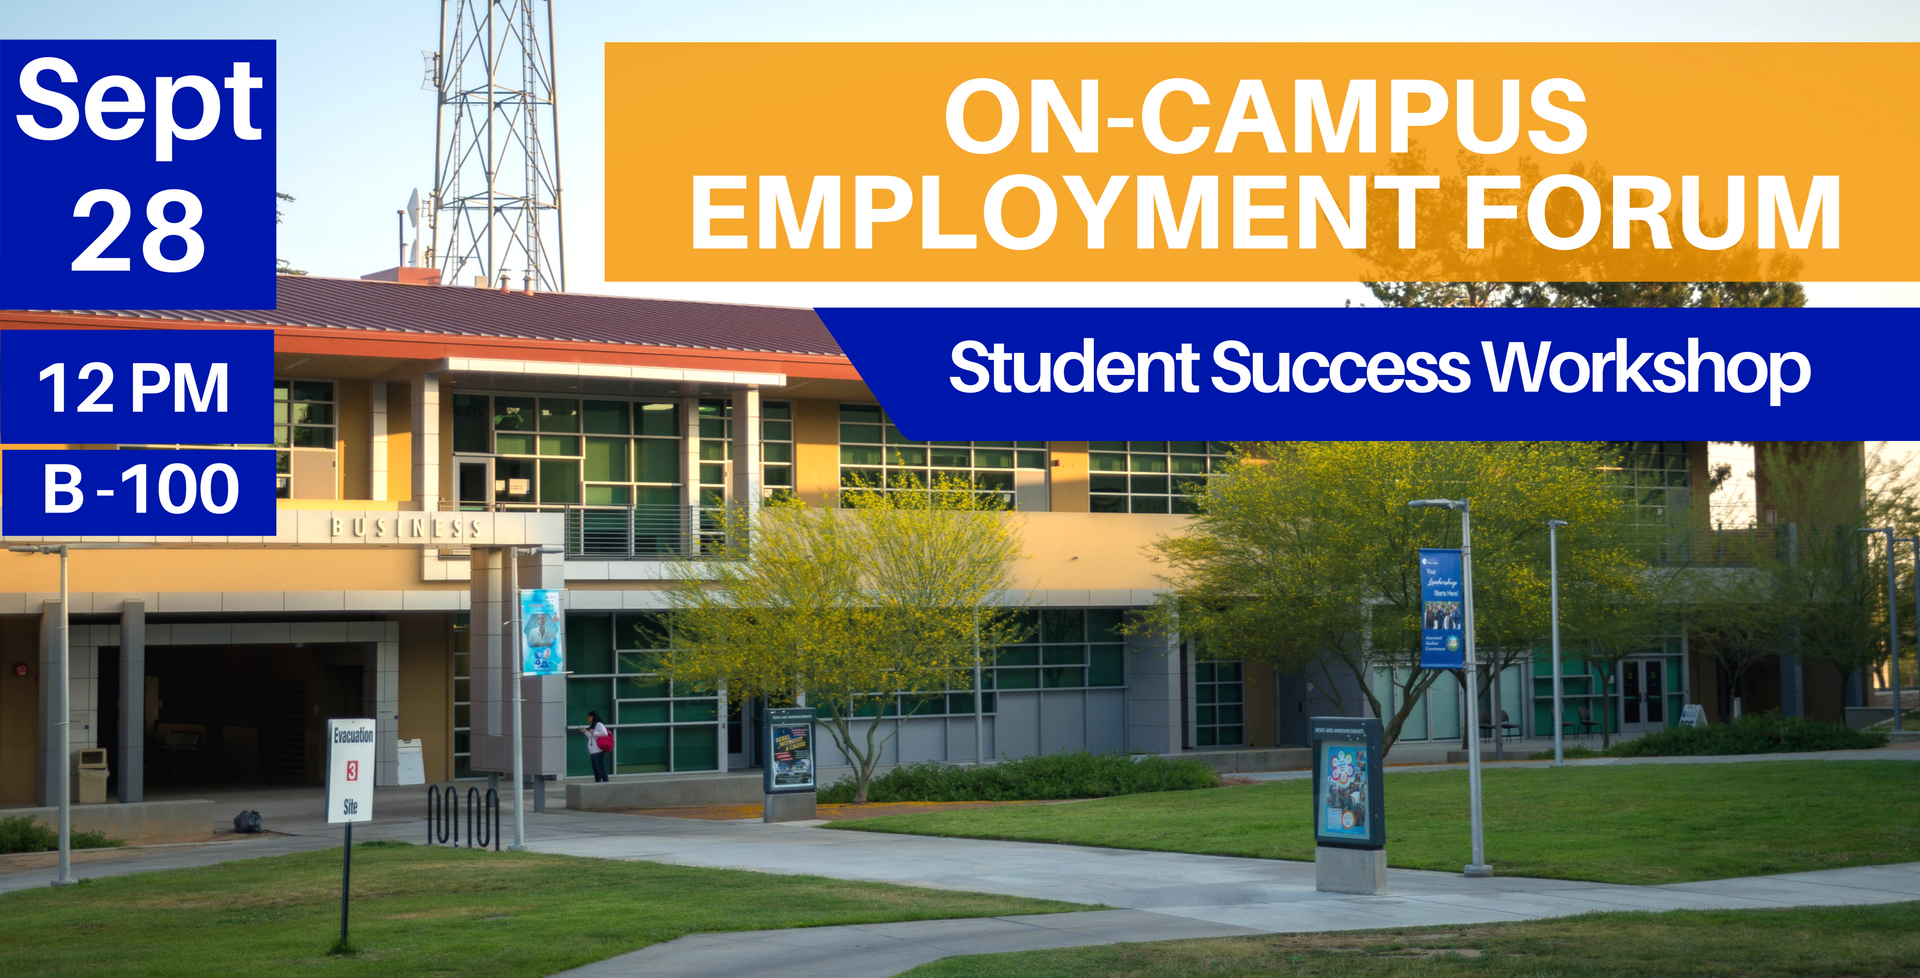 September 28 > On-Campus Employment Forum